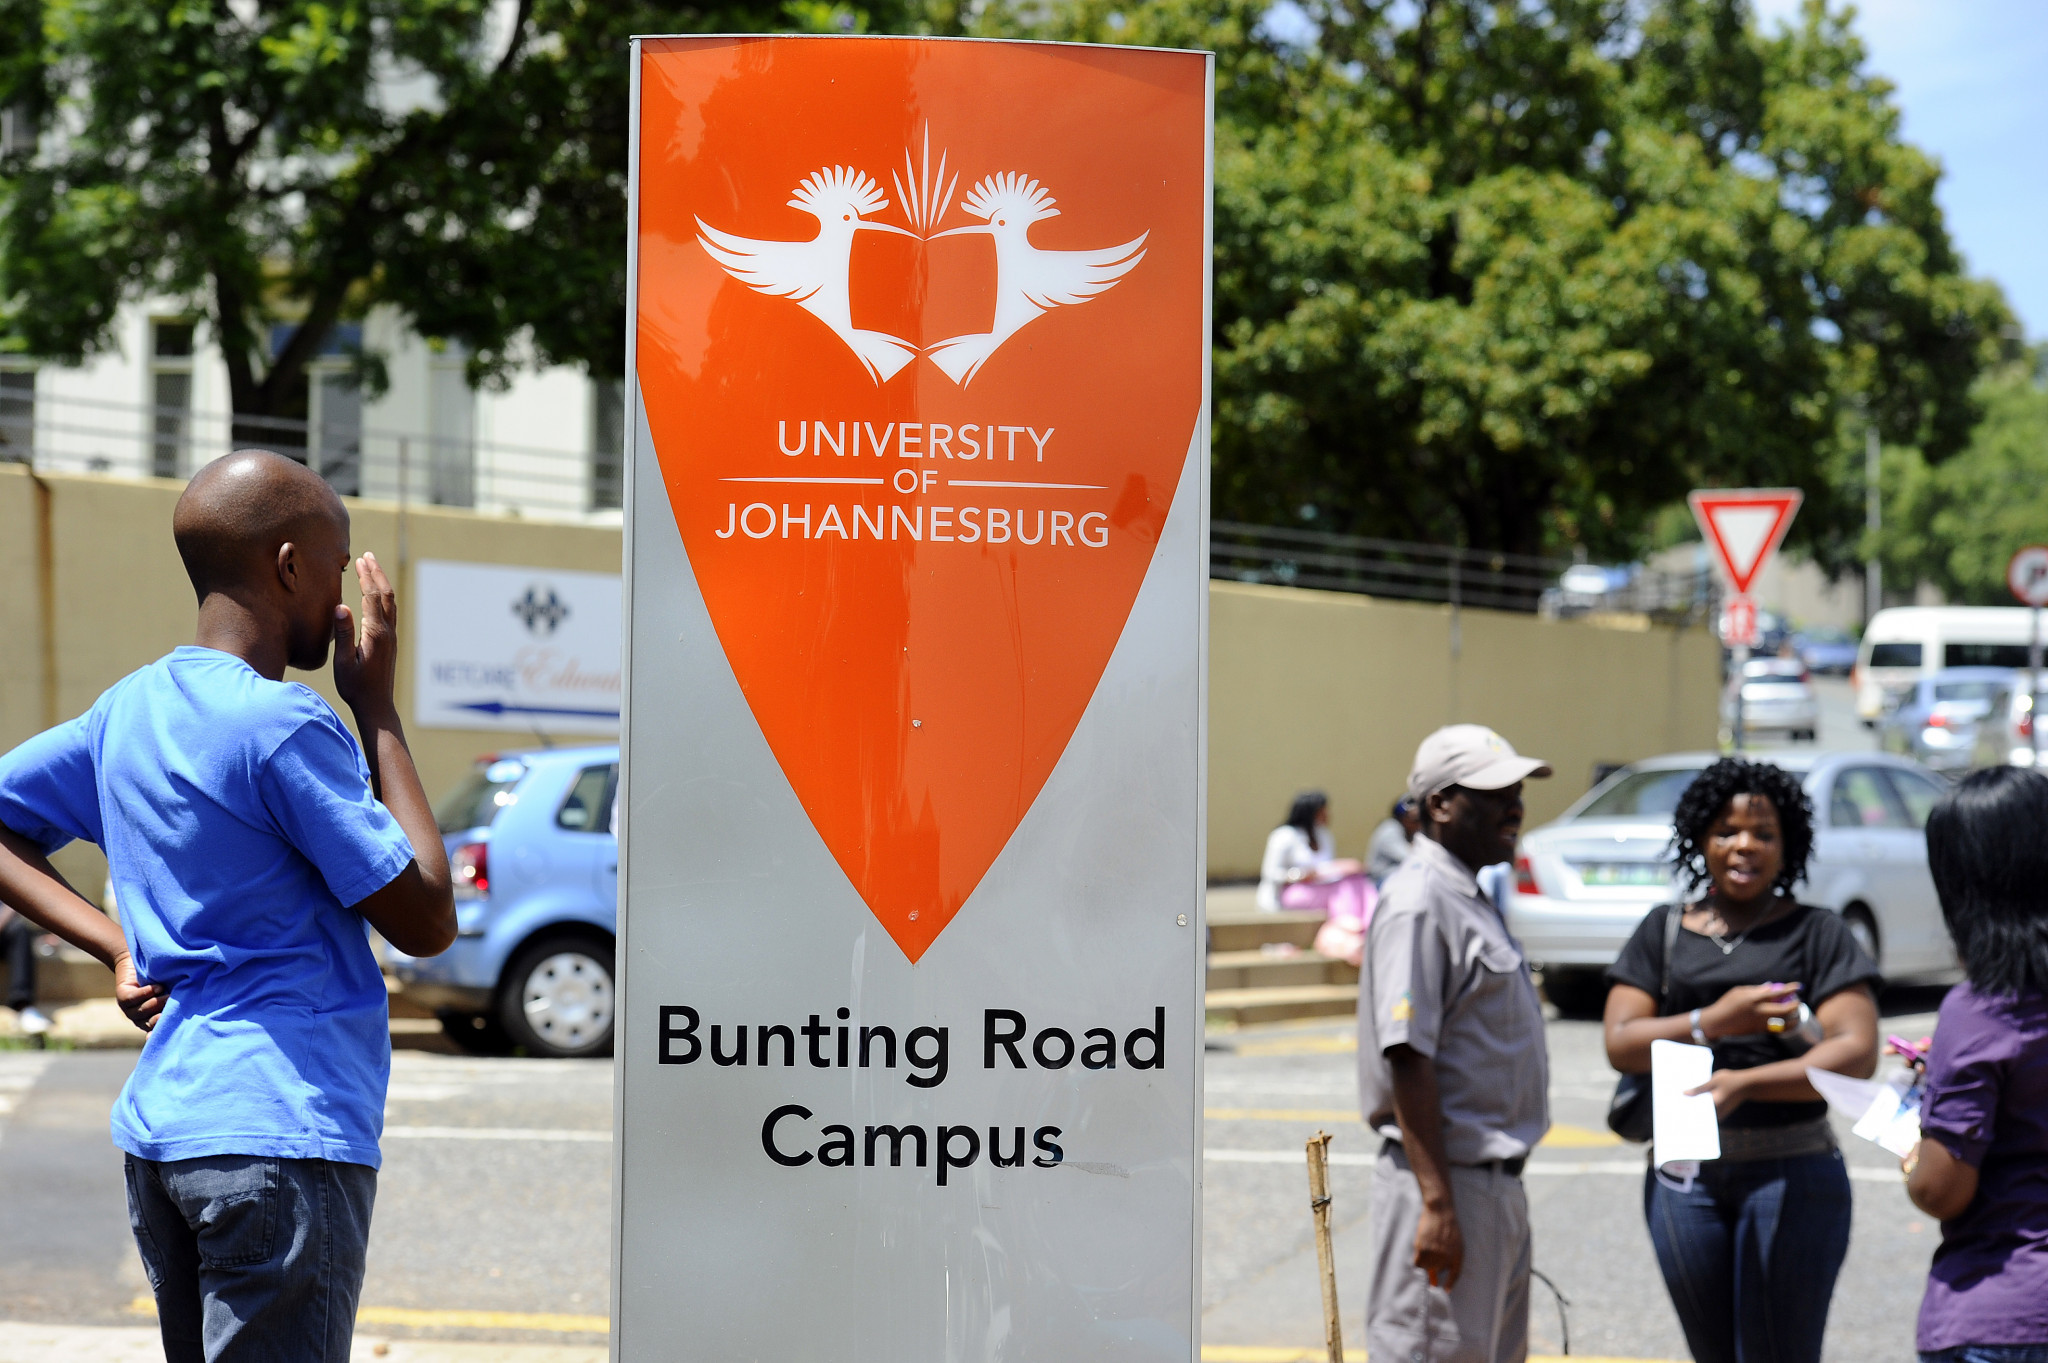 University of Johannesburg director honoured for contribution to sports